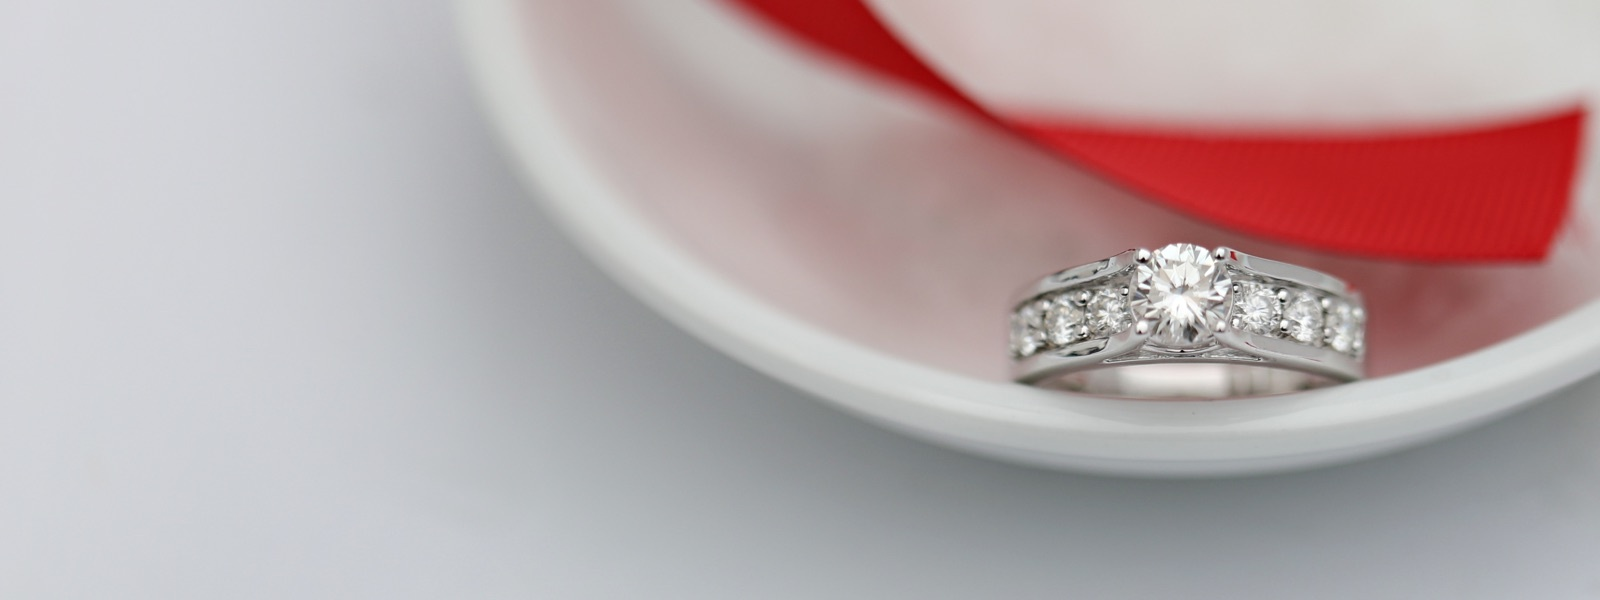 Moissanite Fire Jewelry